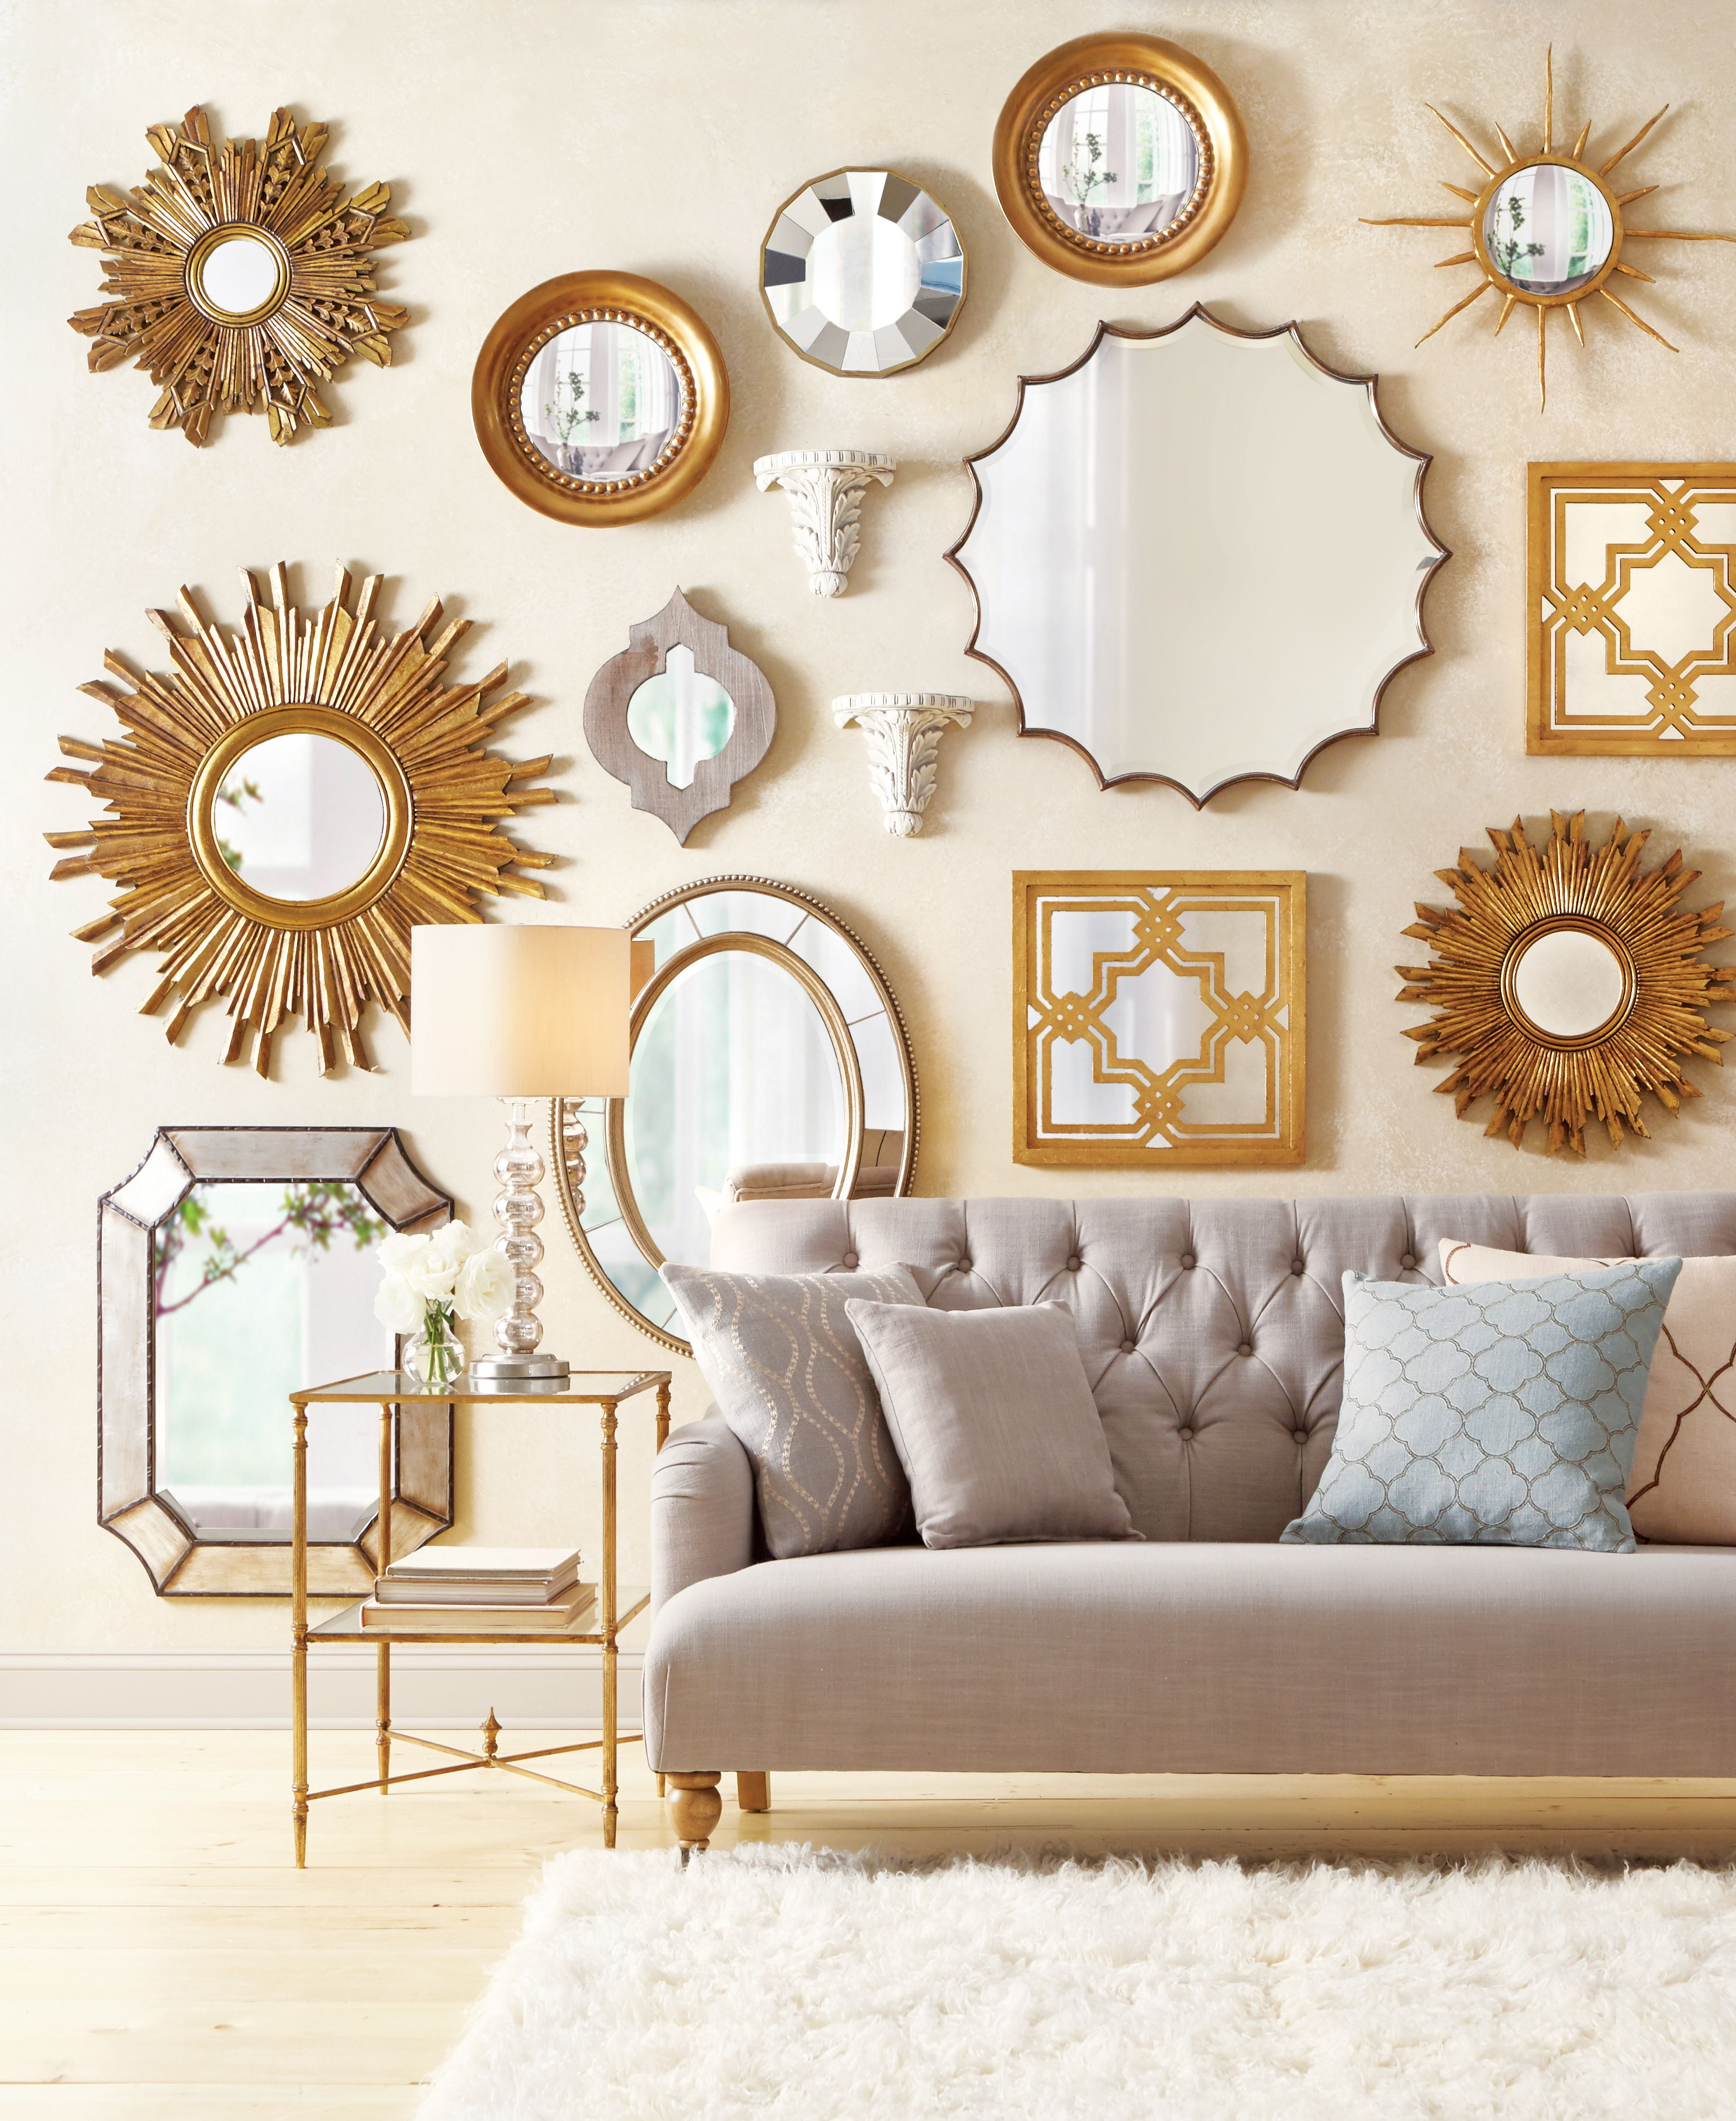 mirrors make a wall stand out so well love this gallery wall mirrors make a wall stand out so well love this gallery wall design homedecorators